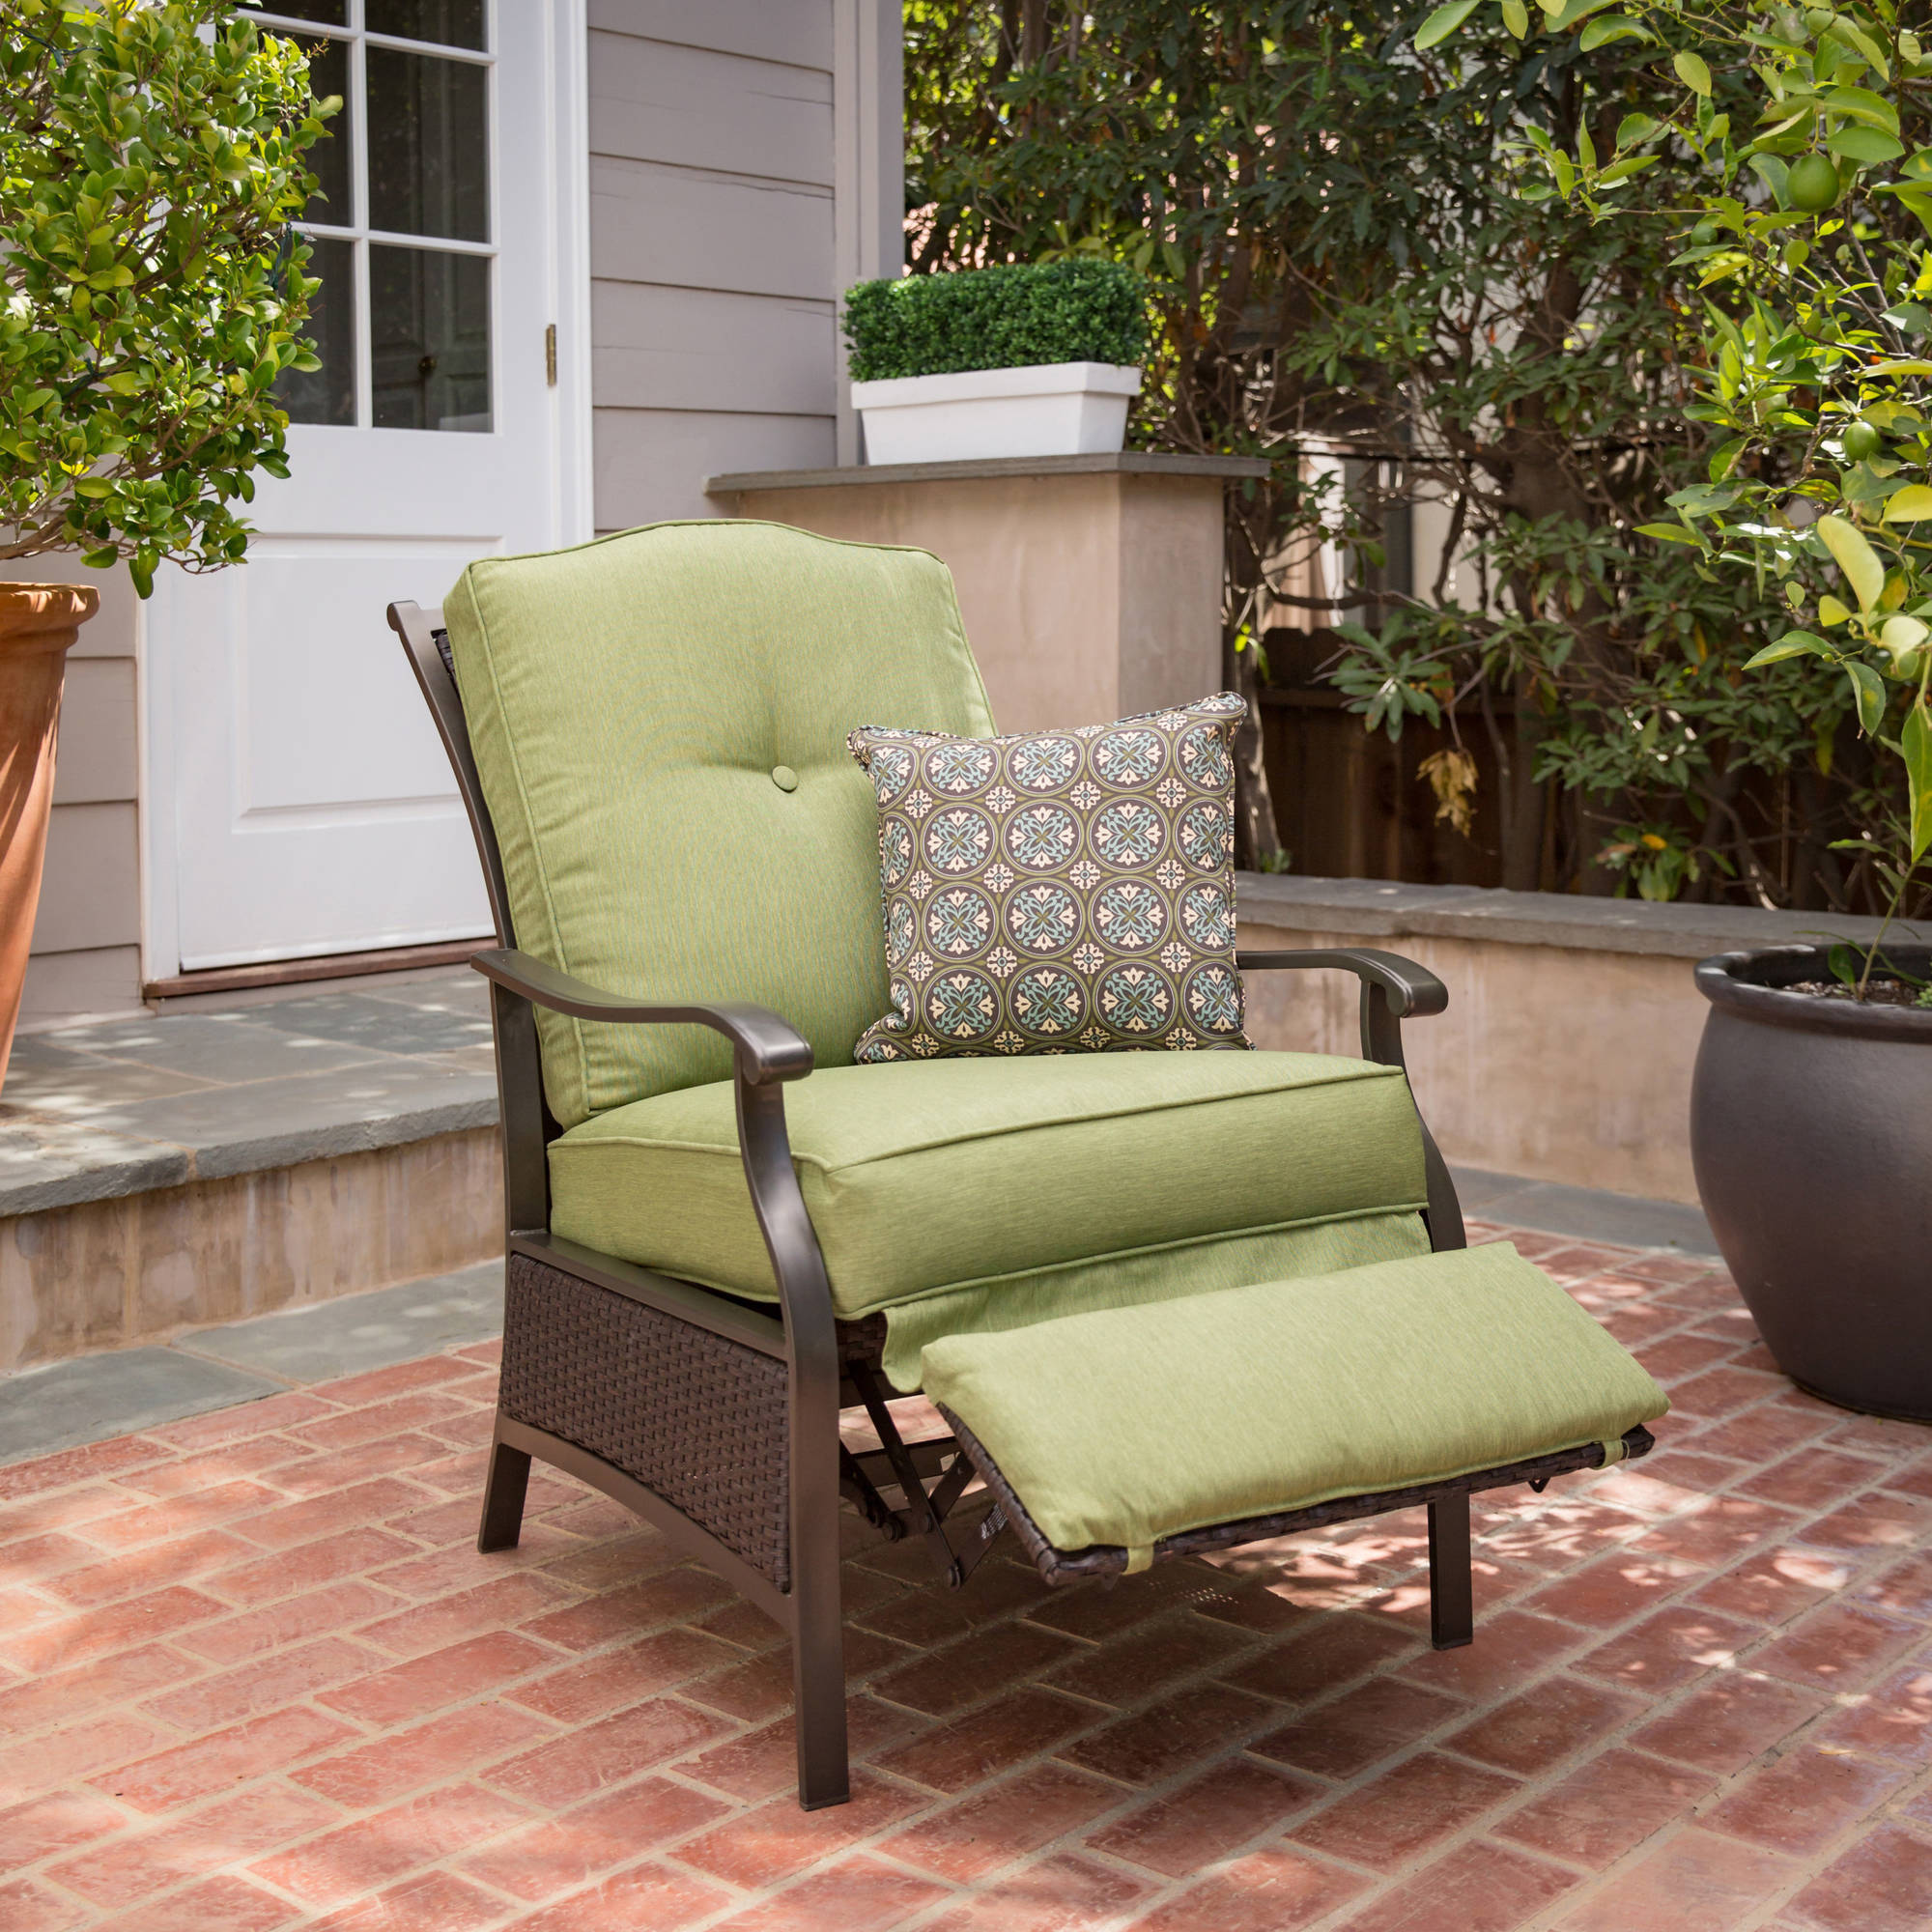 Amazing Porch Patio Furniture Images